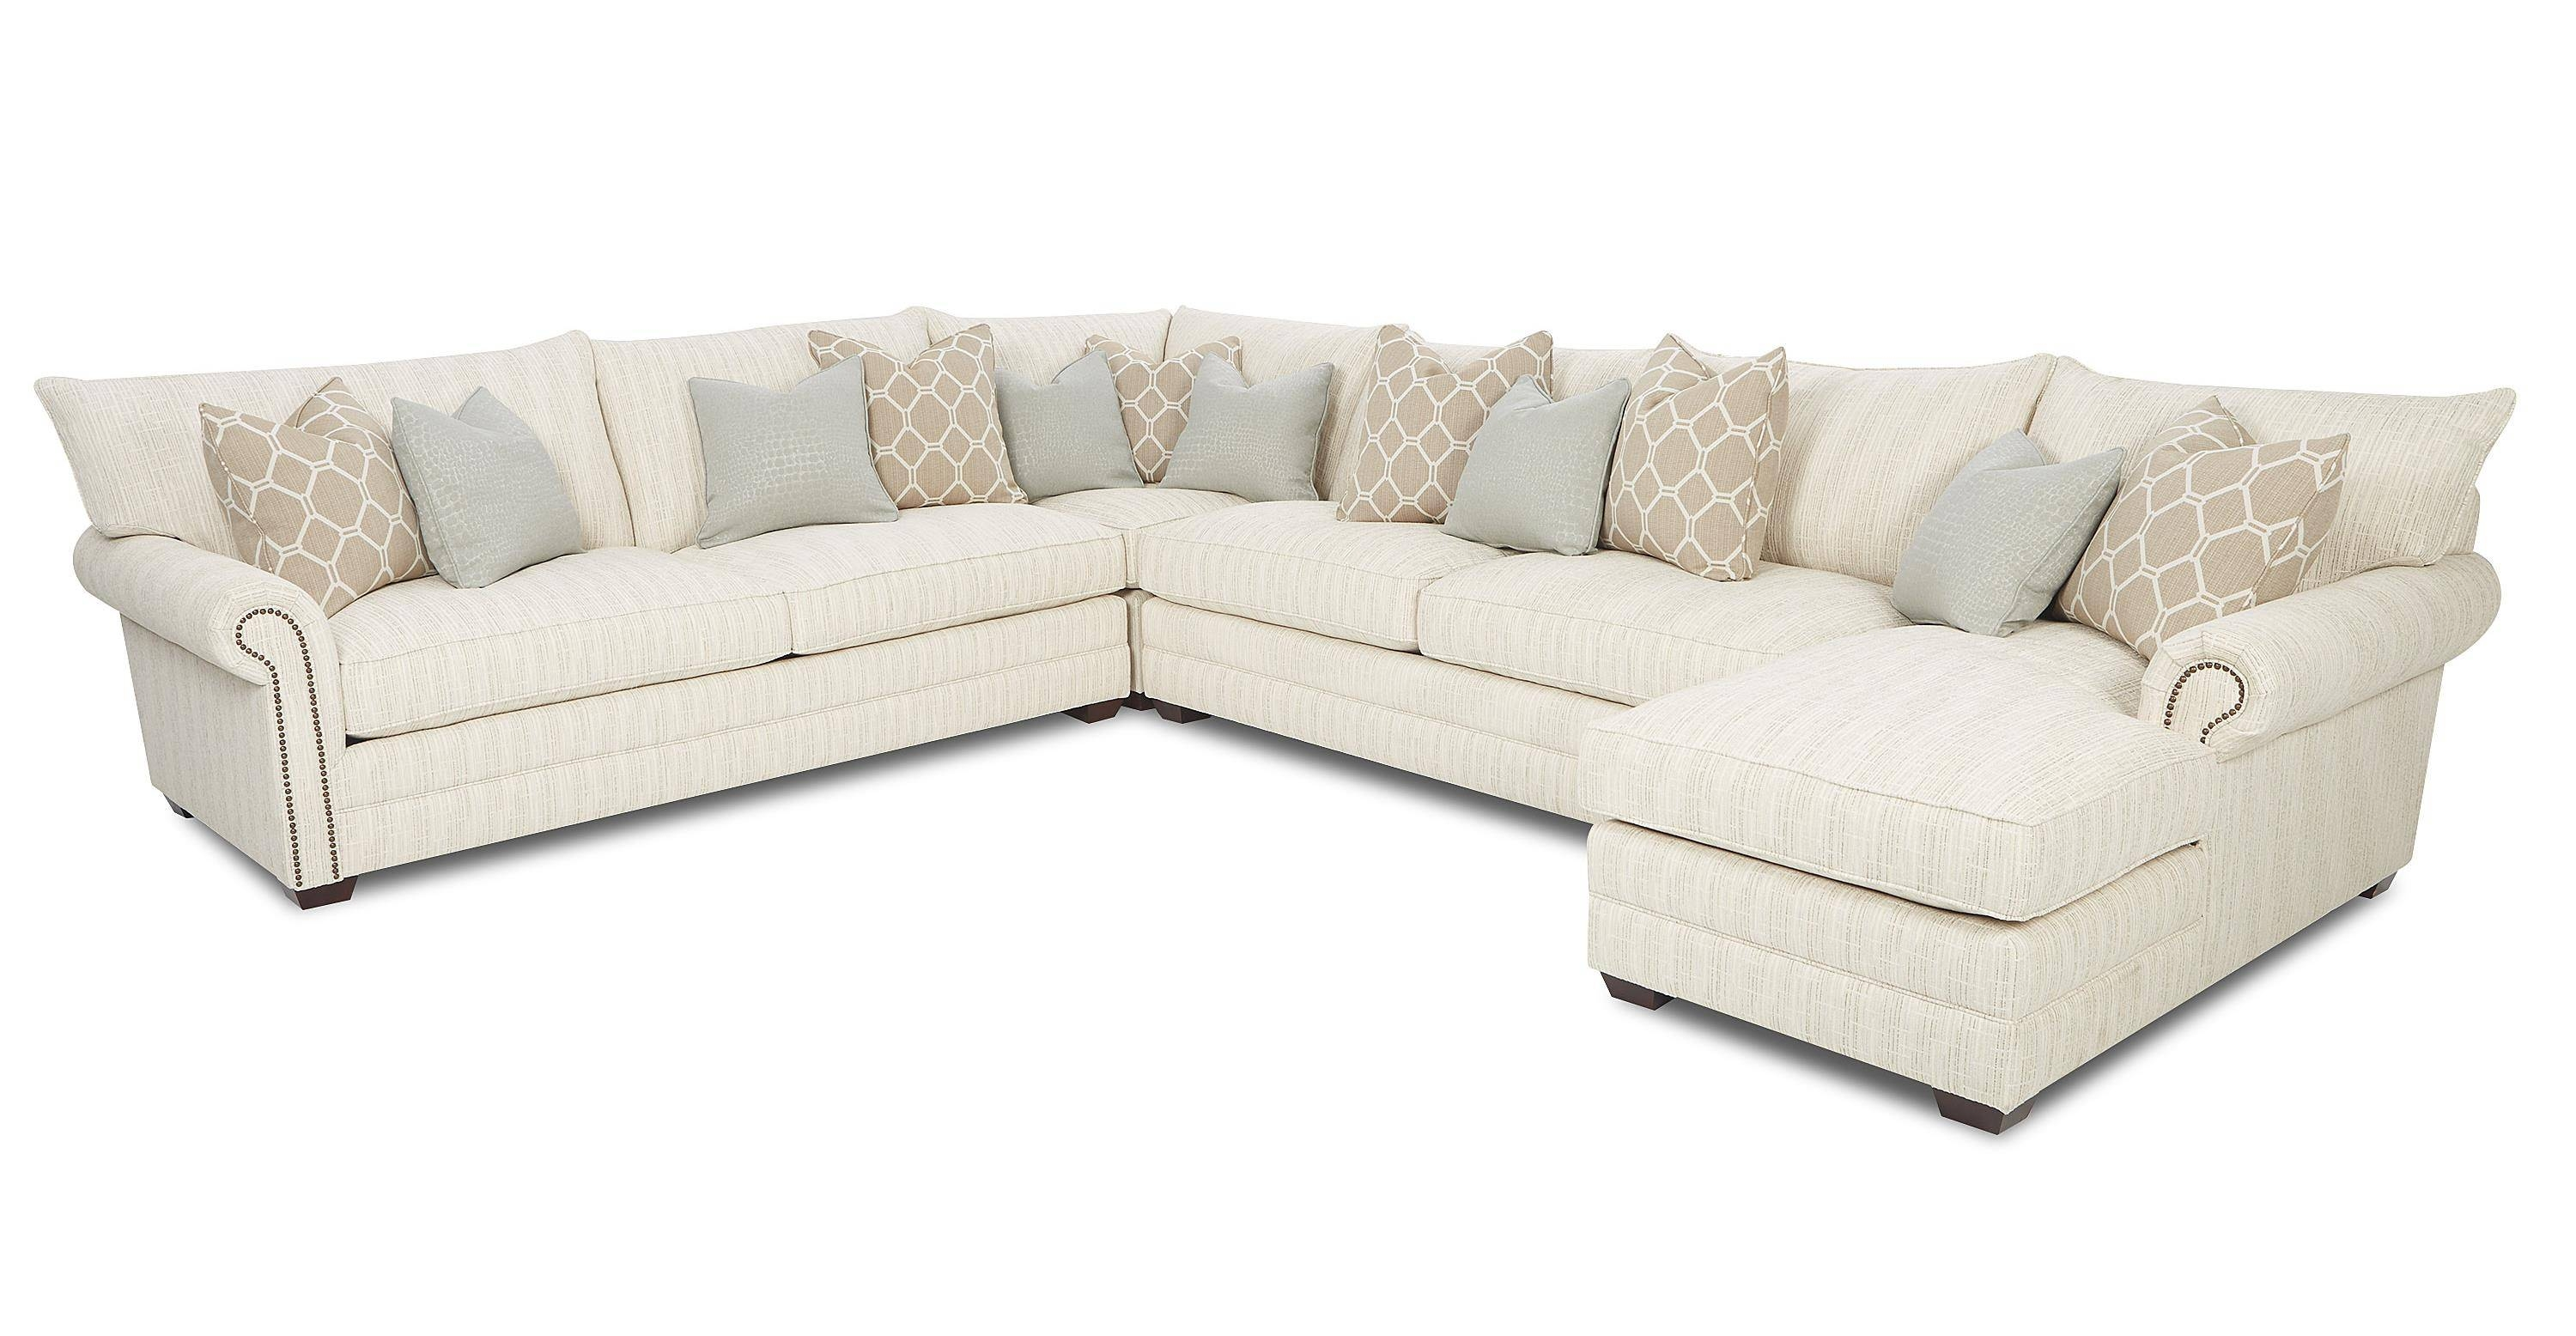 Traditional Sectional Sofa With Nailhead Trim And Chaise Lounge pertaining to Traditional Sectional Sofas Living Room Furniture (Image 20 of 25)